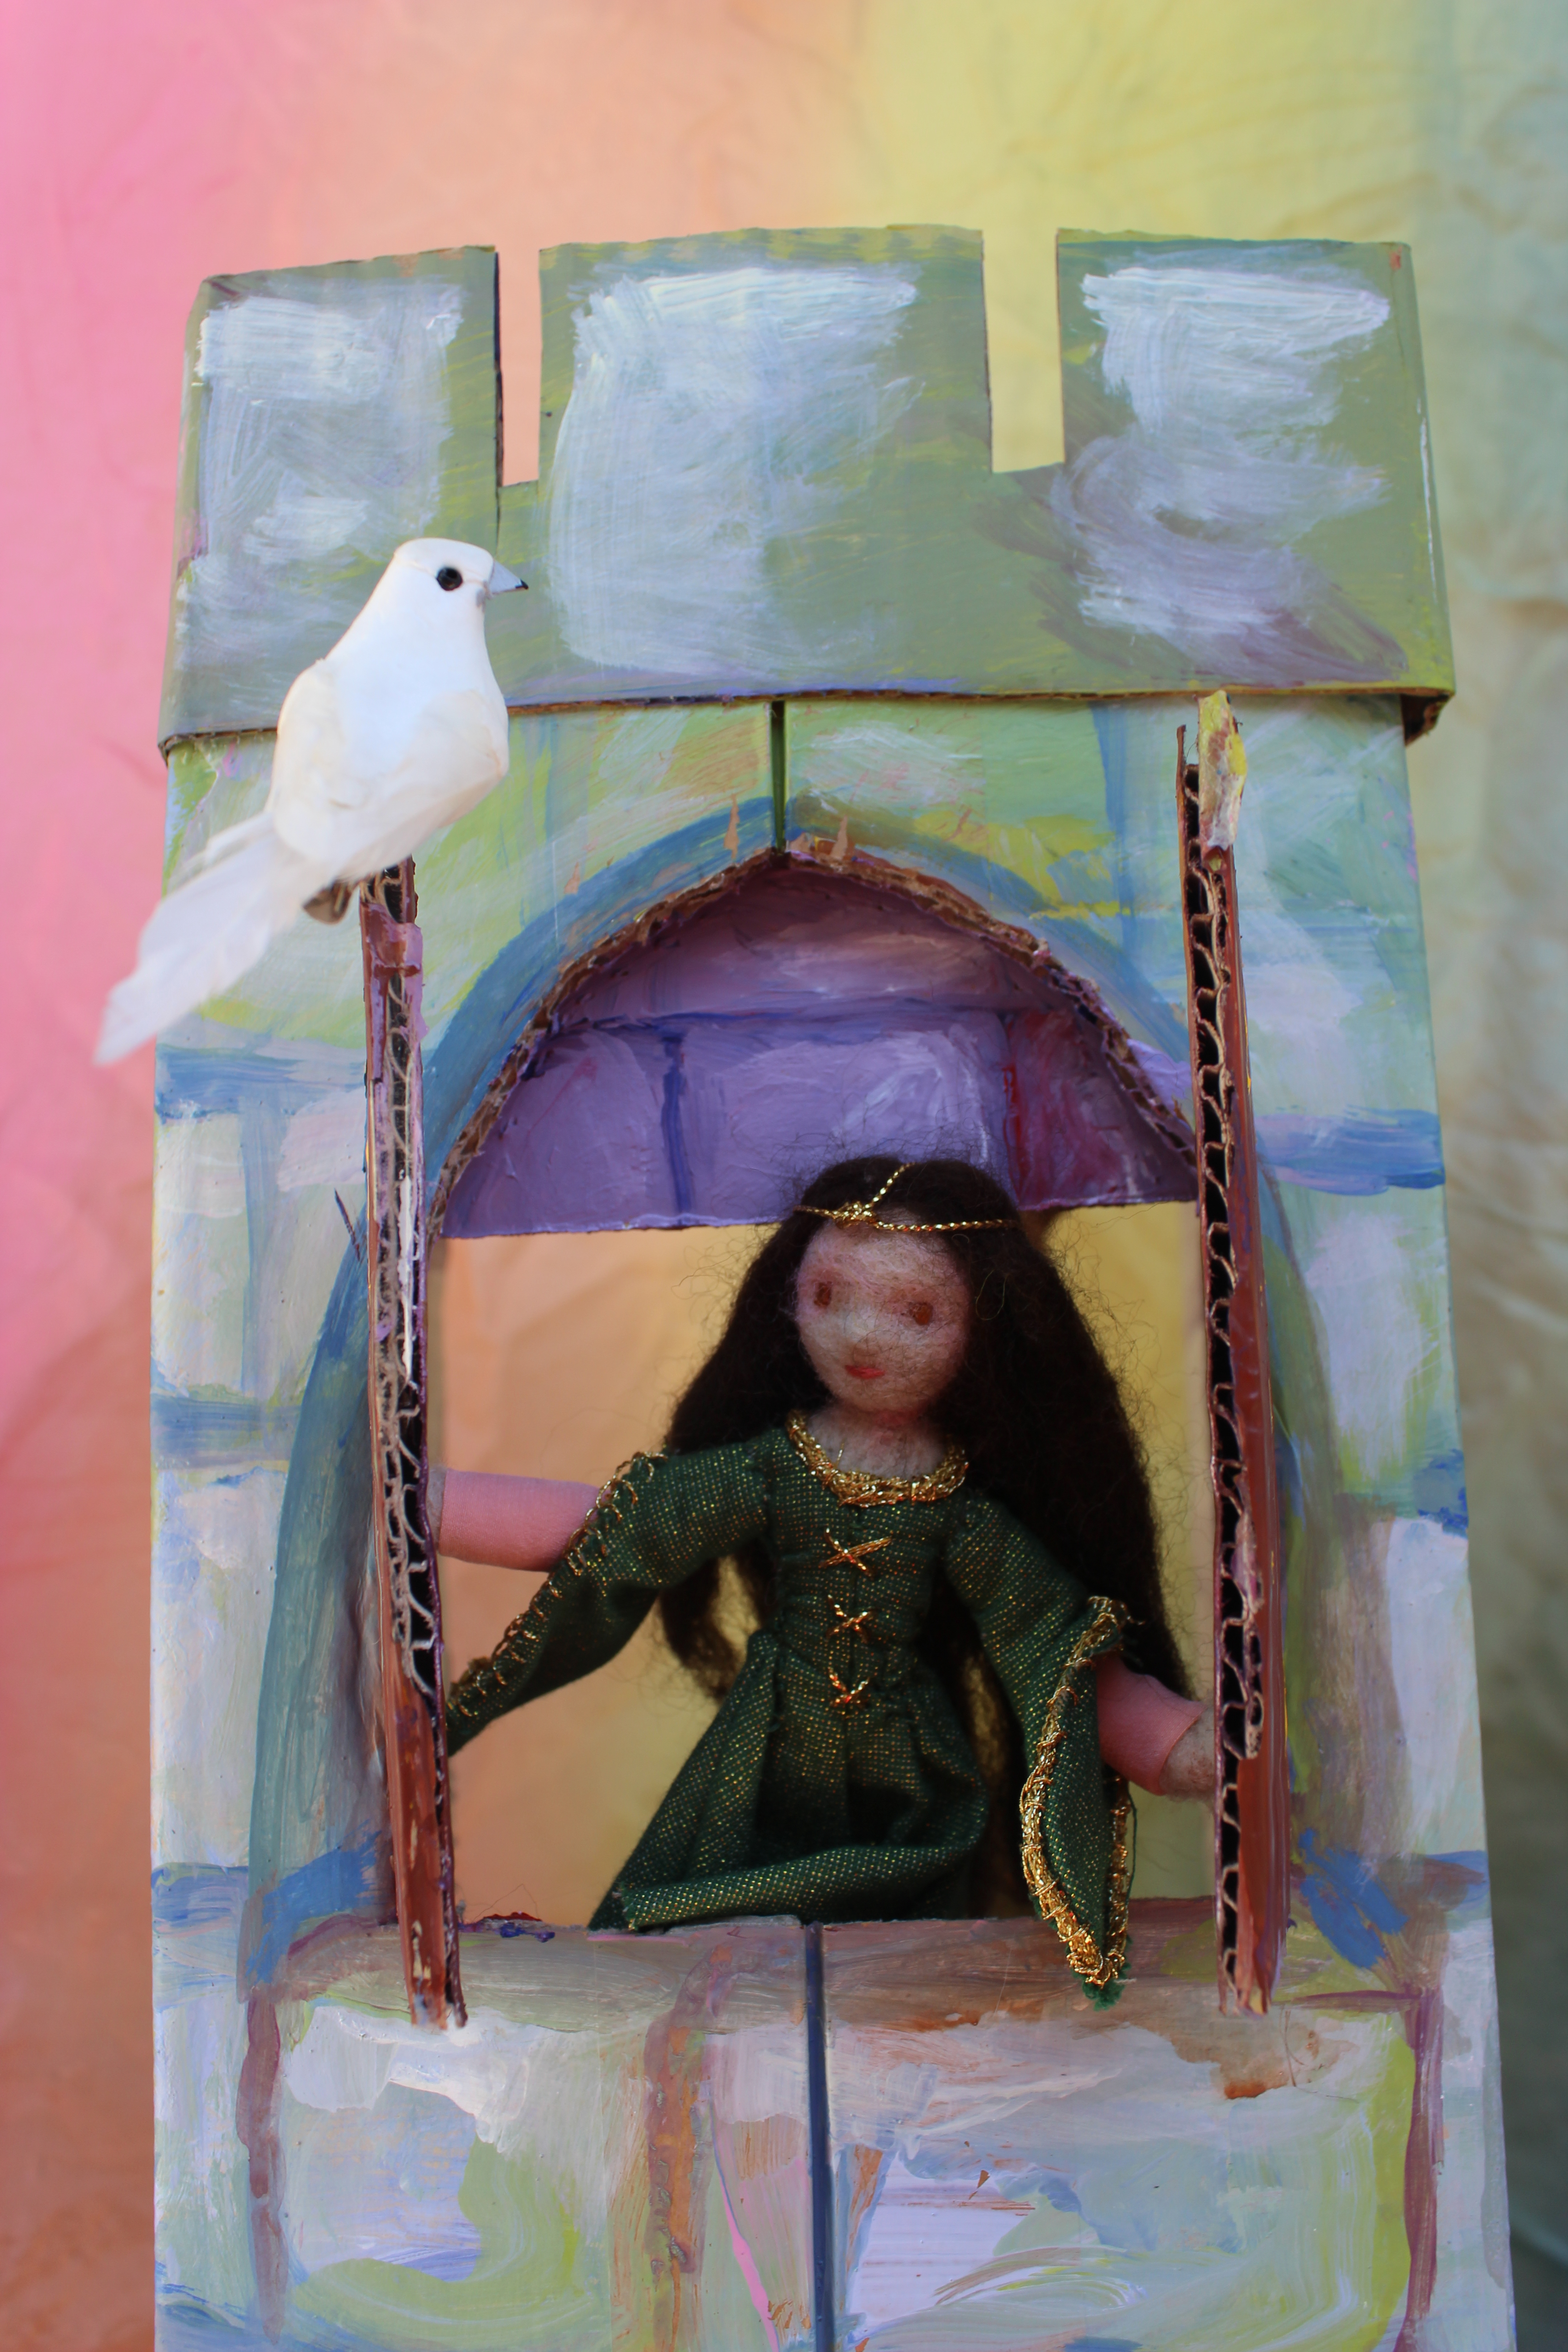 dove on Princess Emerald's tower window. Needle-felted and handstitched Waldorf Table Top Fairy Tale and Season Nature Table historical medieval nostalgic miniature doll house doll handmade by CastleofCostaMesa.Com